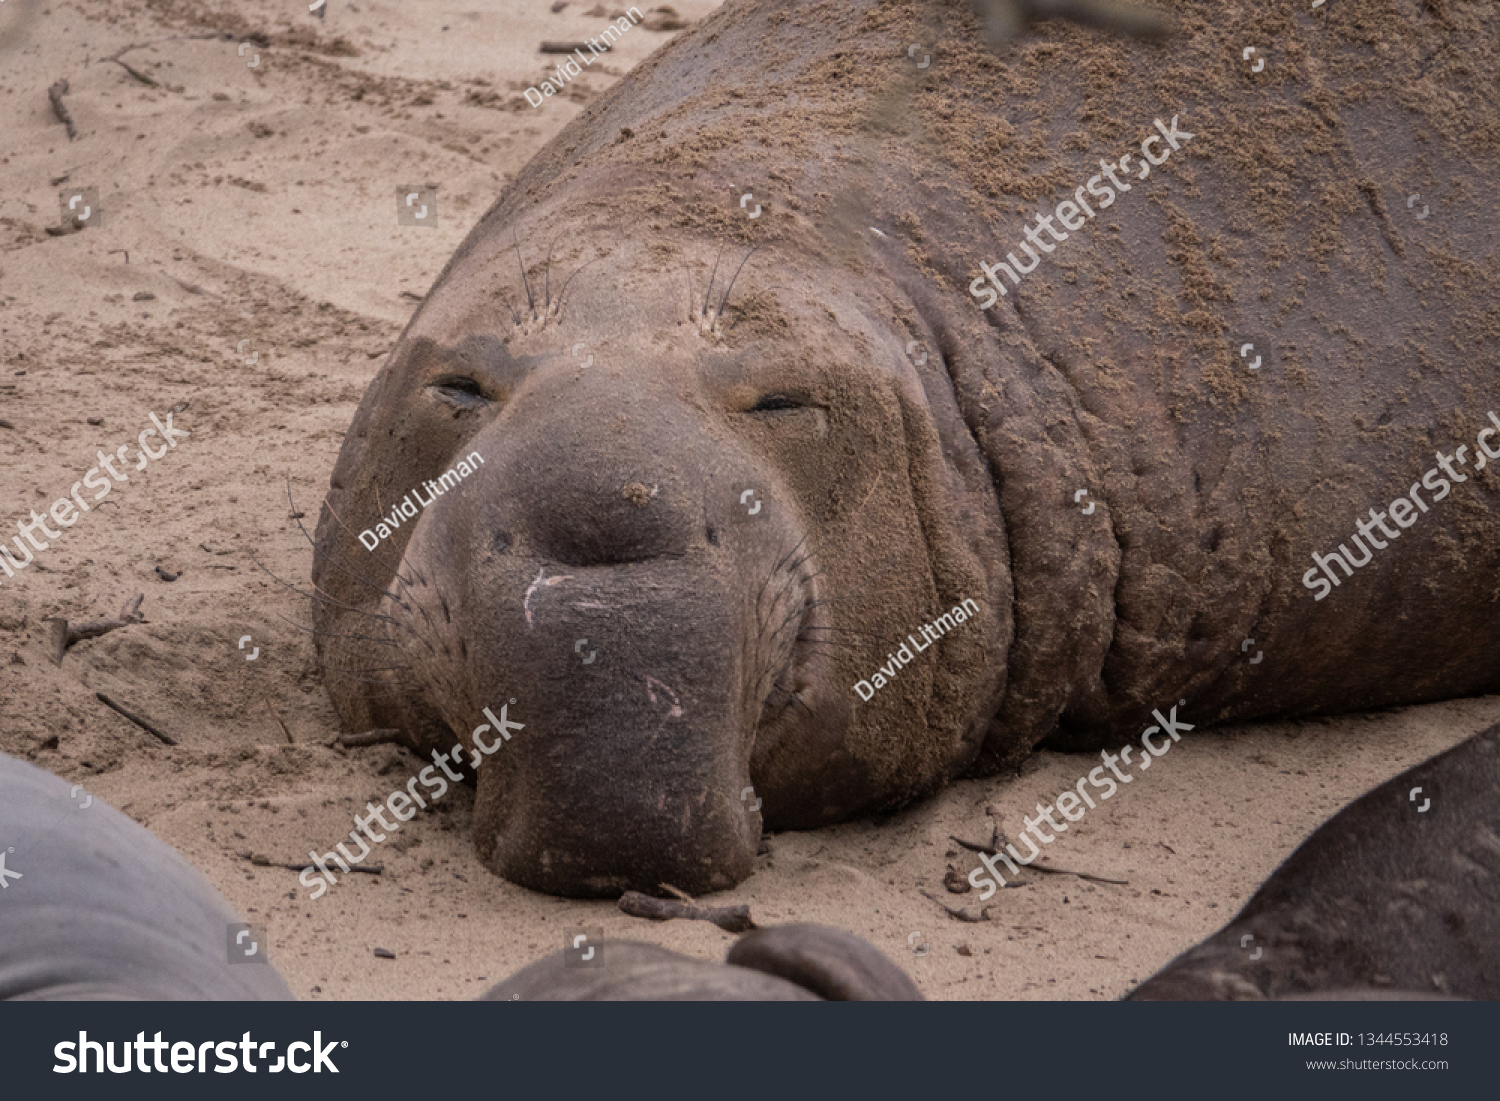 A Northern Elephant Seal bull (Mirounga angustirostris) on the beach during mating season, at Ano Nuevo State Park and preserve, along the Pacific Coast of California, in Pescadero.